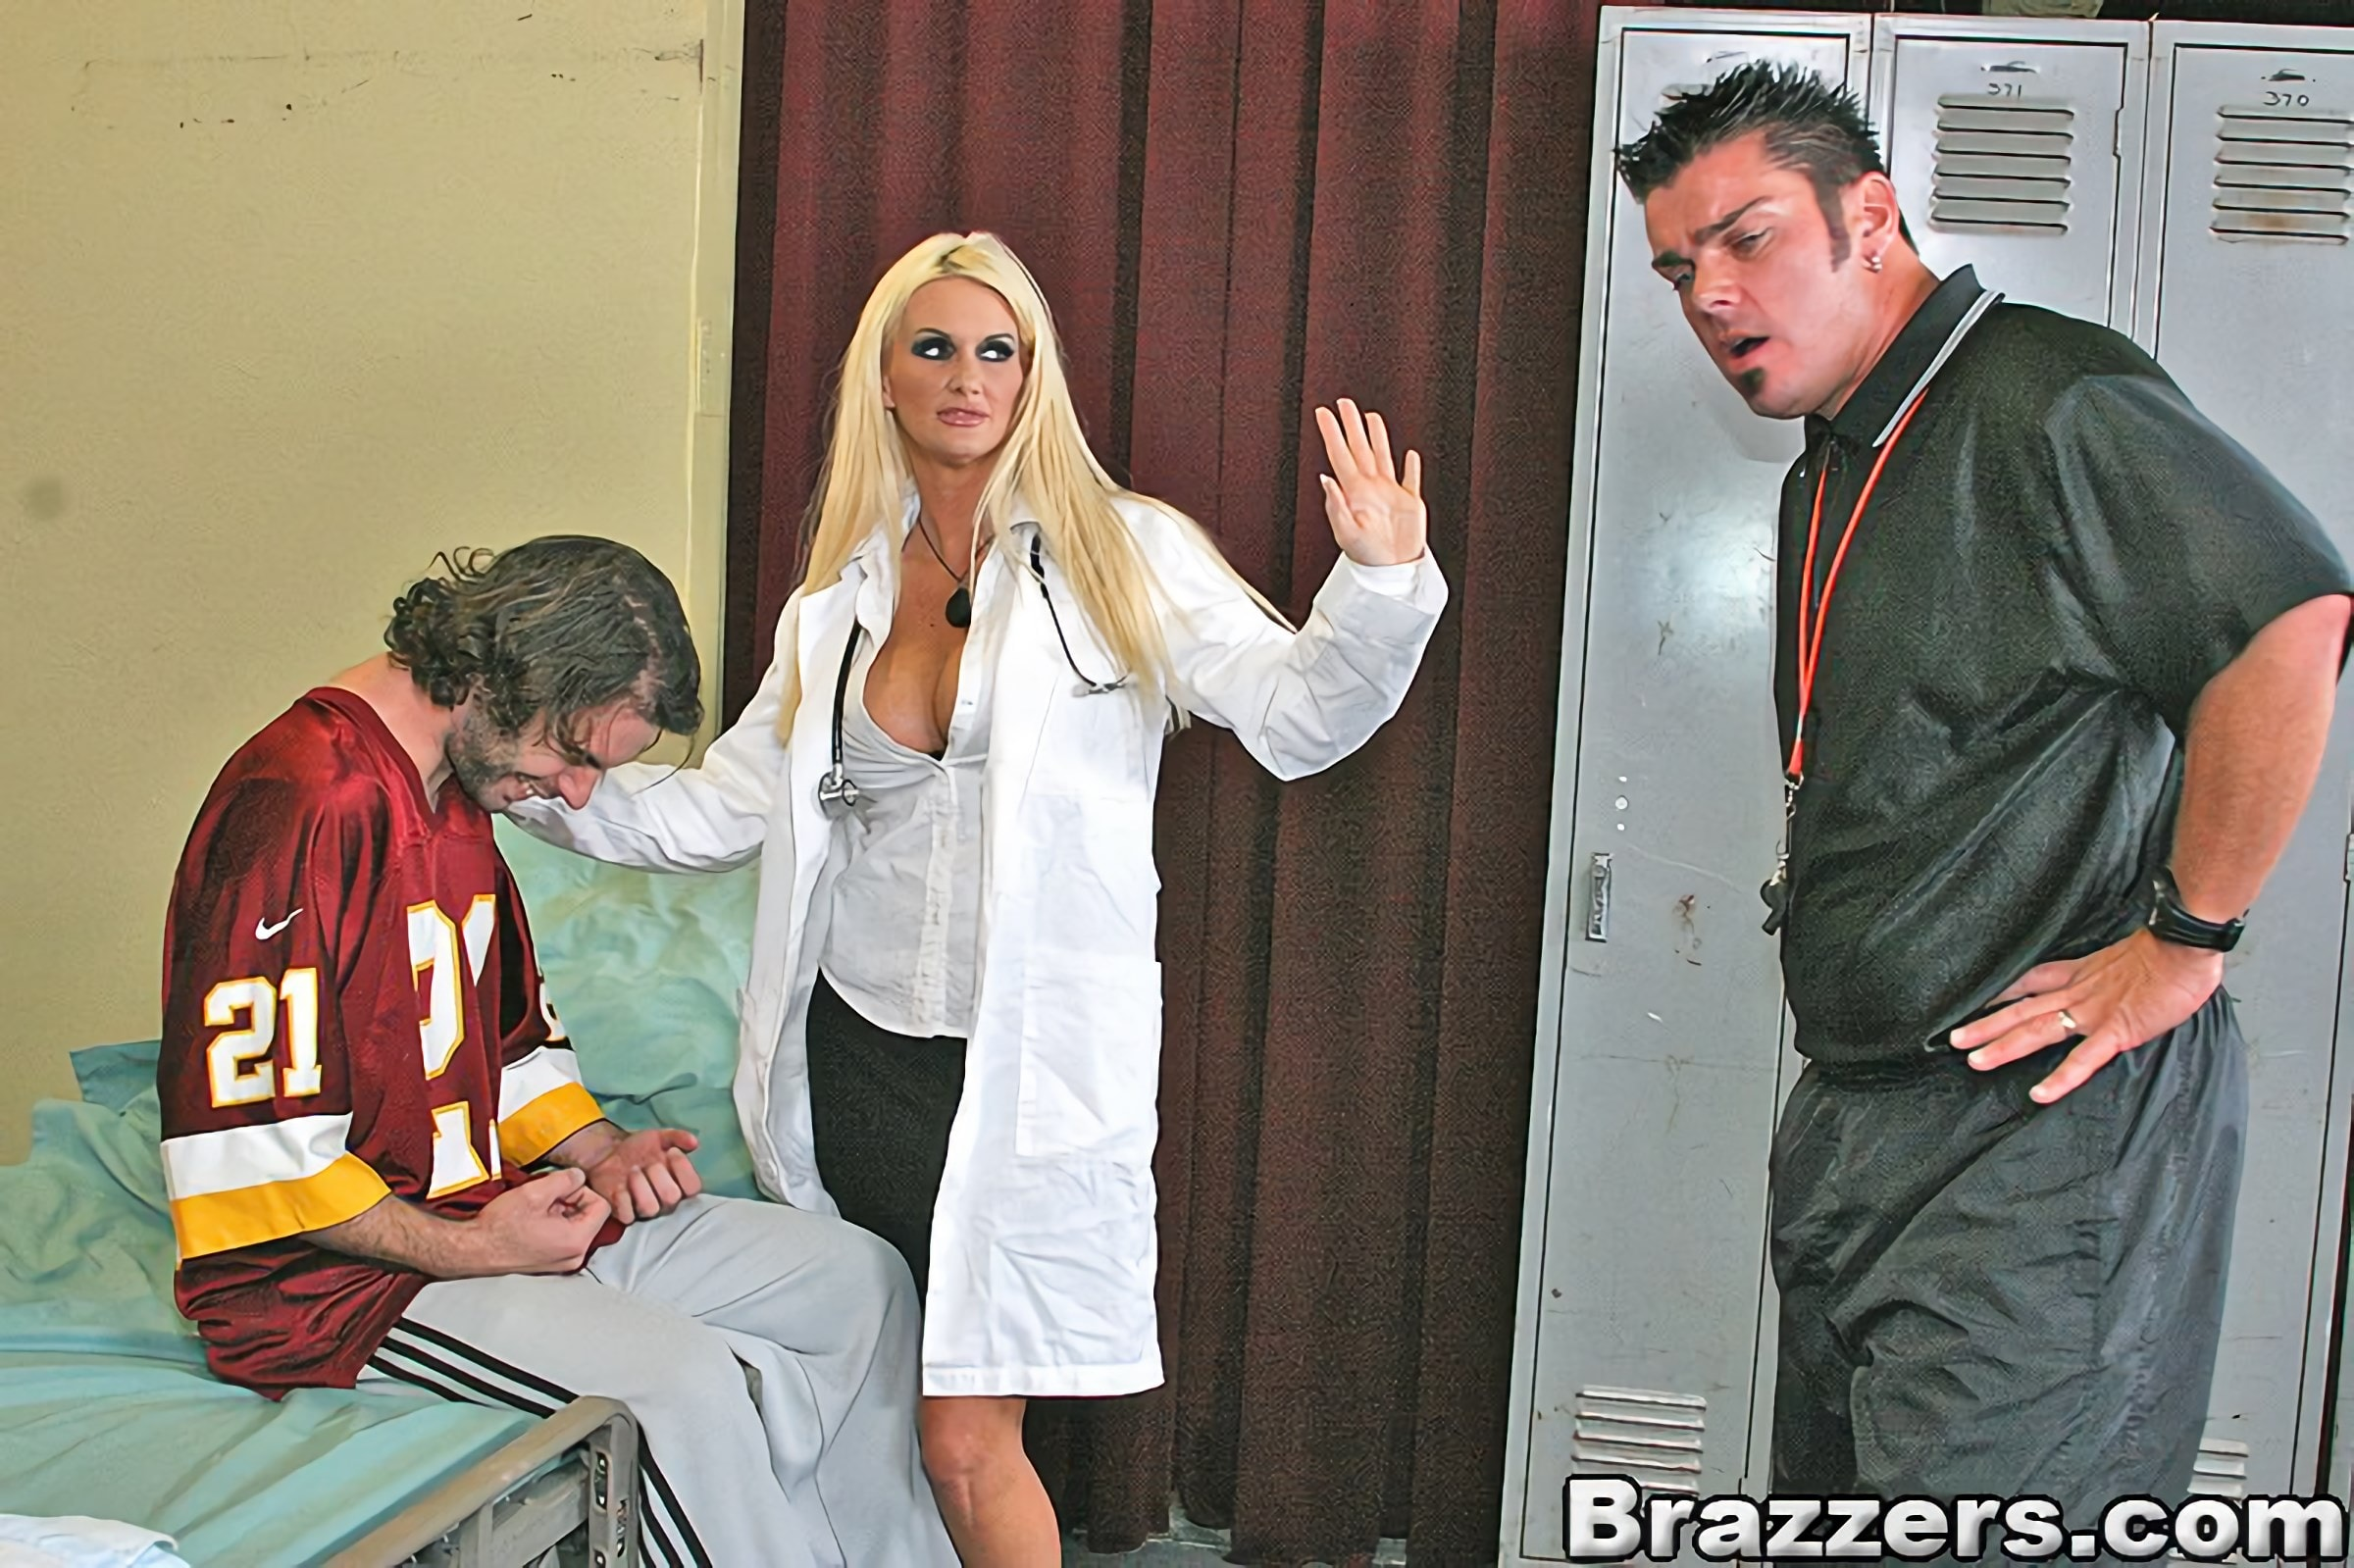 Brazzers 'Take One For The Team.' starring Rhyse Richards (photo 4)